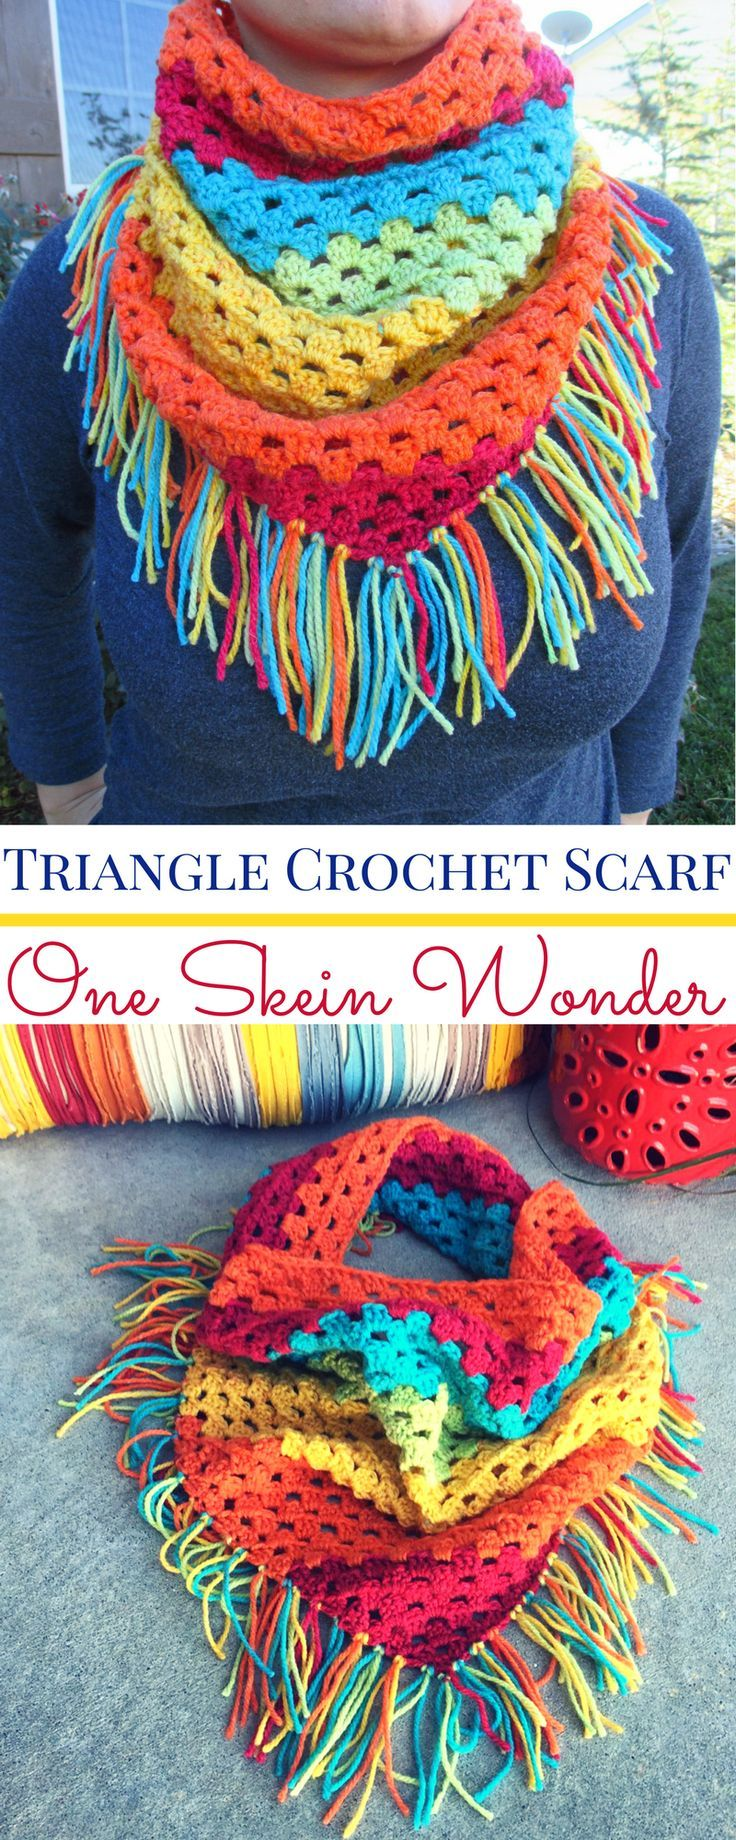 Triangle Crochet Scarf with Fringe (Using Caron Cake Yarn) http://hearthookhome.com/triangle-crochet-scarf-with-fringe/?utm_campaign=coschedule&utm_source=pinterest&utm_medium=Ashlea%20K%20-%20Heart%2C%20Hook%2C%20Home&utm_content=Triangle%20Crochet%20Scarf%20with%20Fringe%20%28Using%20Caron%20Cake%20Yarn%29